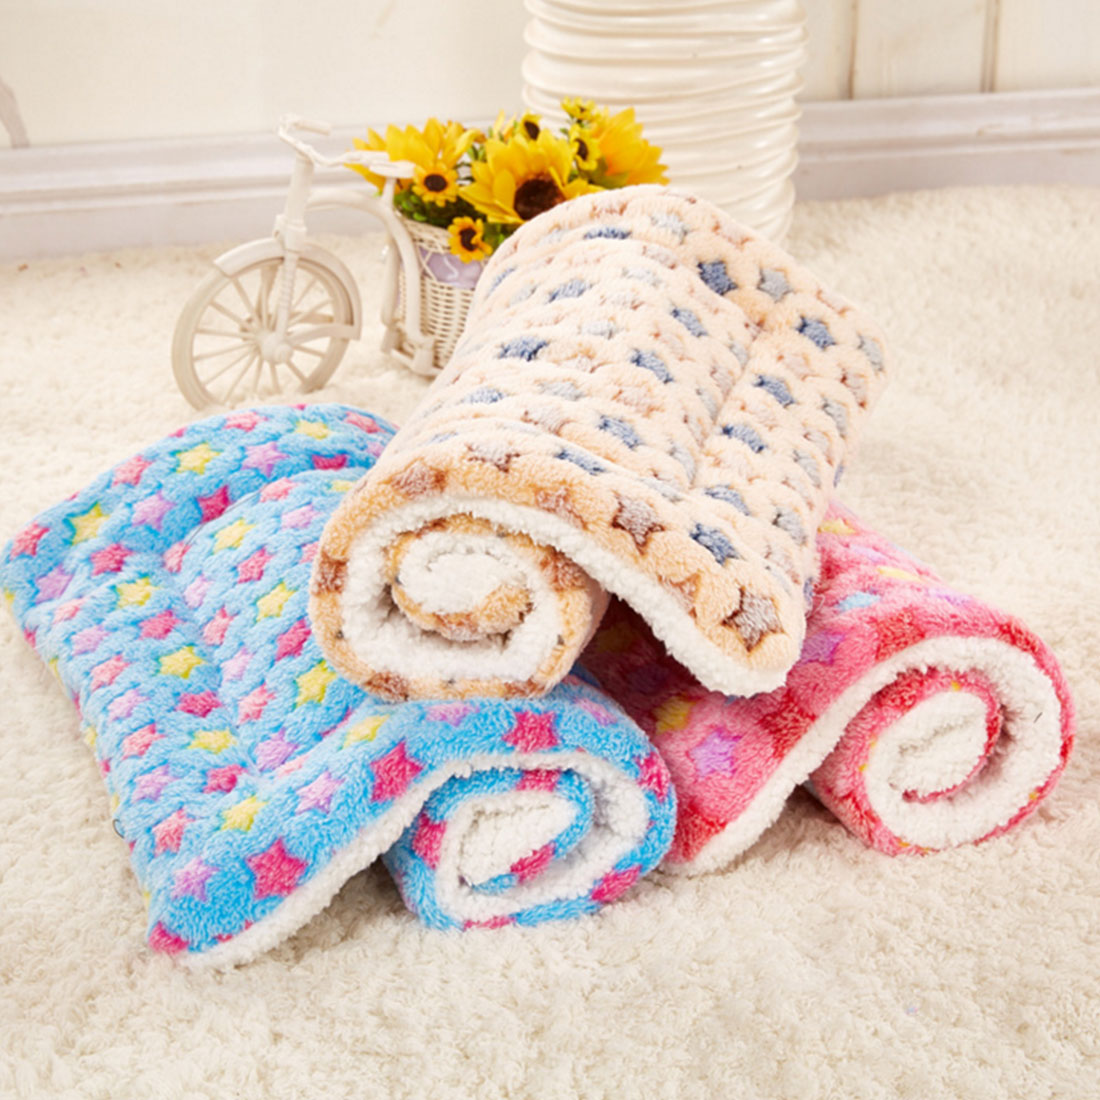 Cat Bed Rest Dog Blanket Winter Foldable Pet Cushion Hondenmand Coral Cashmere Soft Warm Sleep Mat Sweet Dream Bed